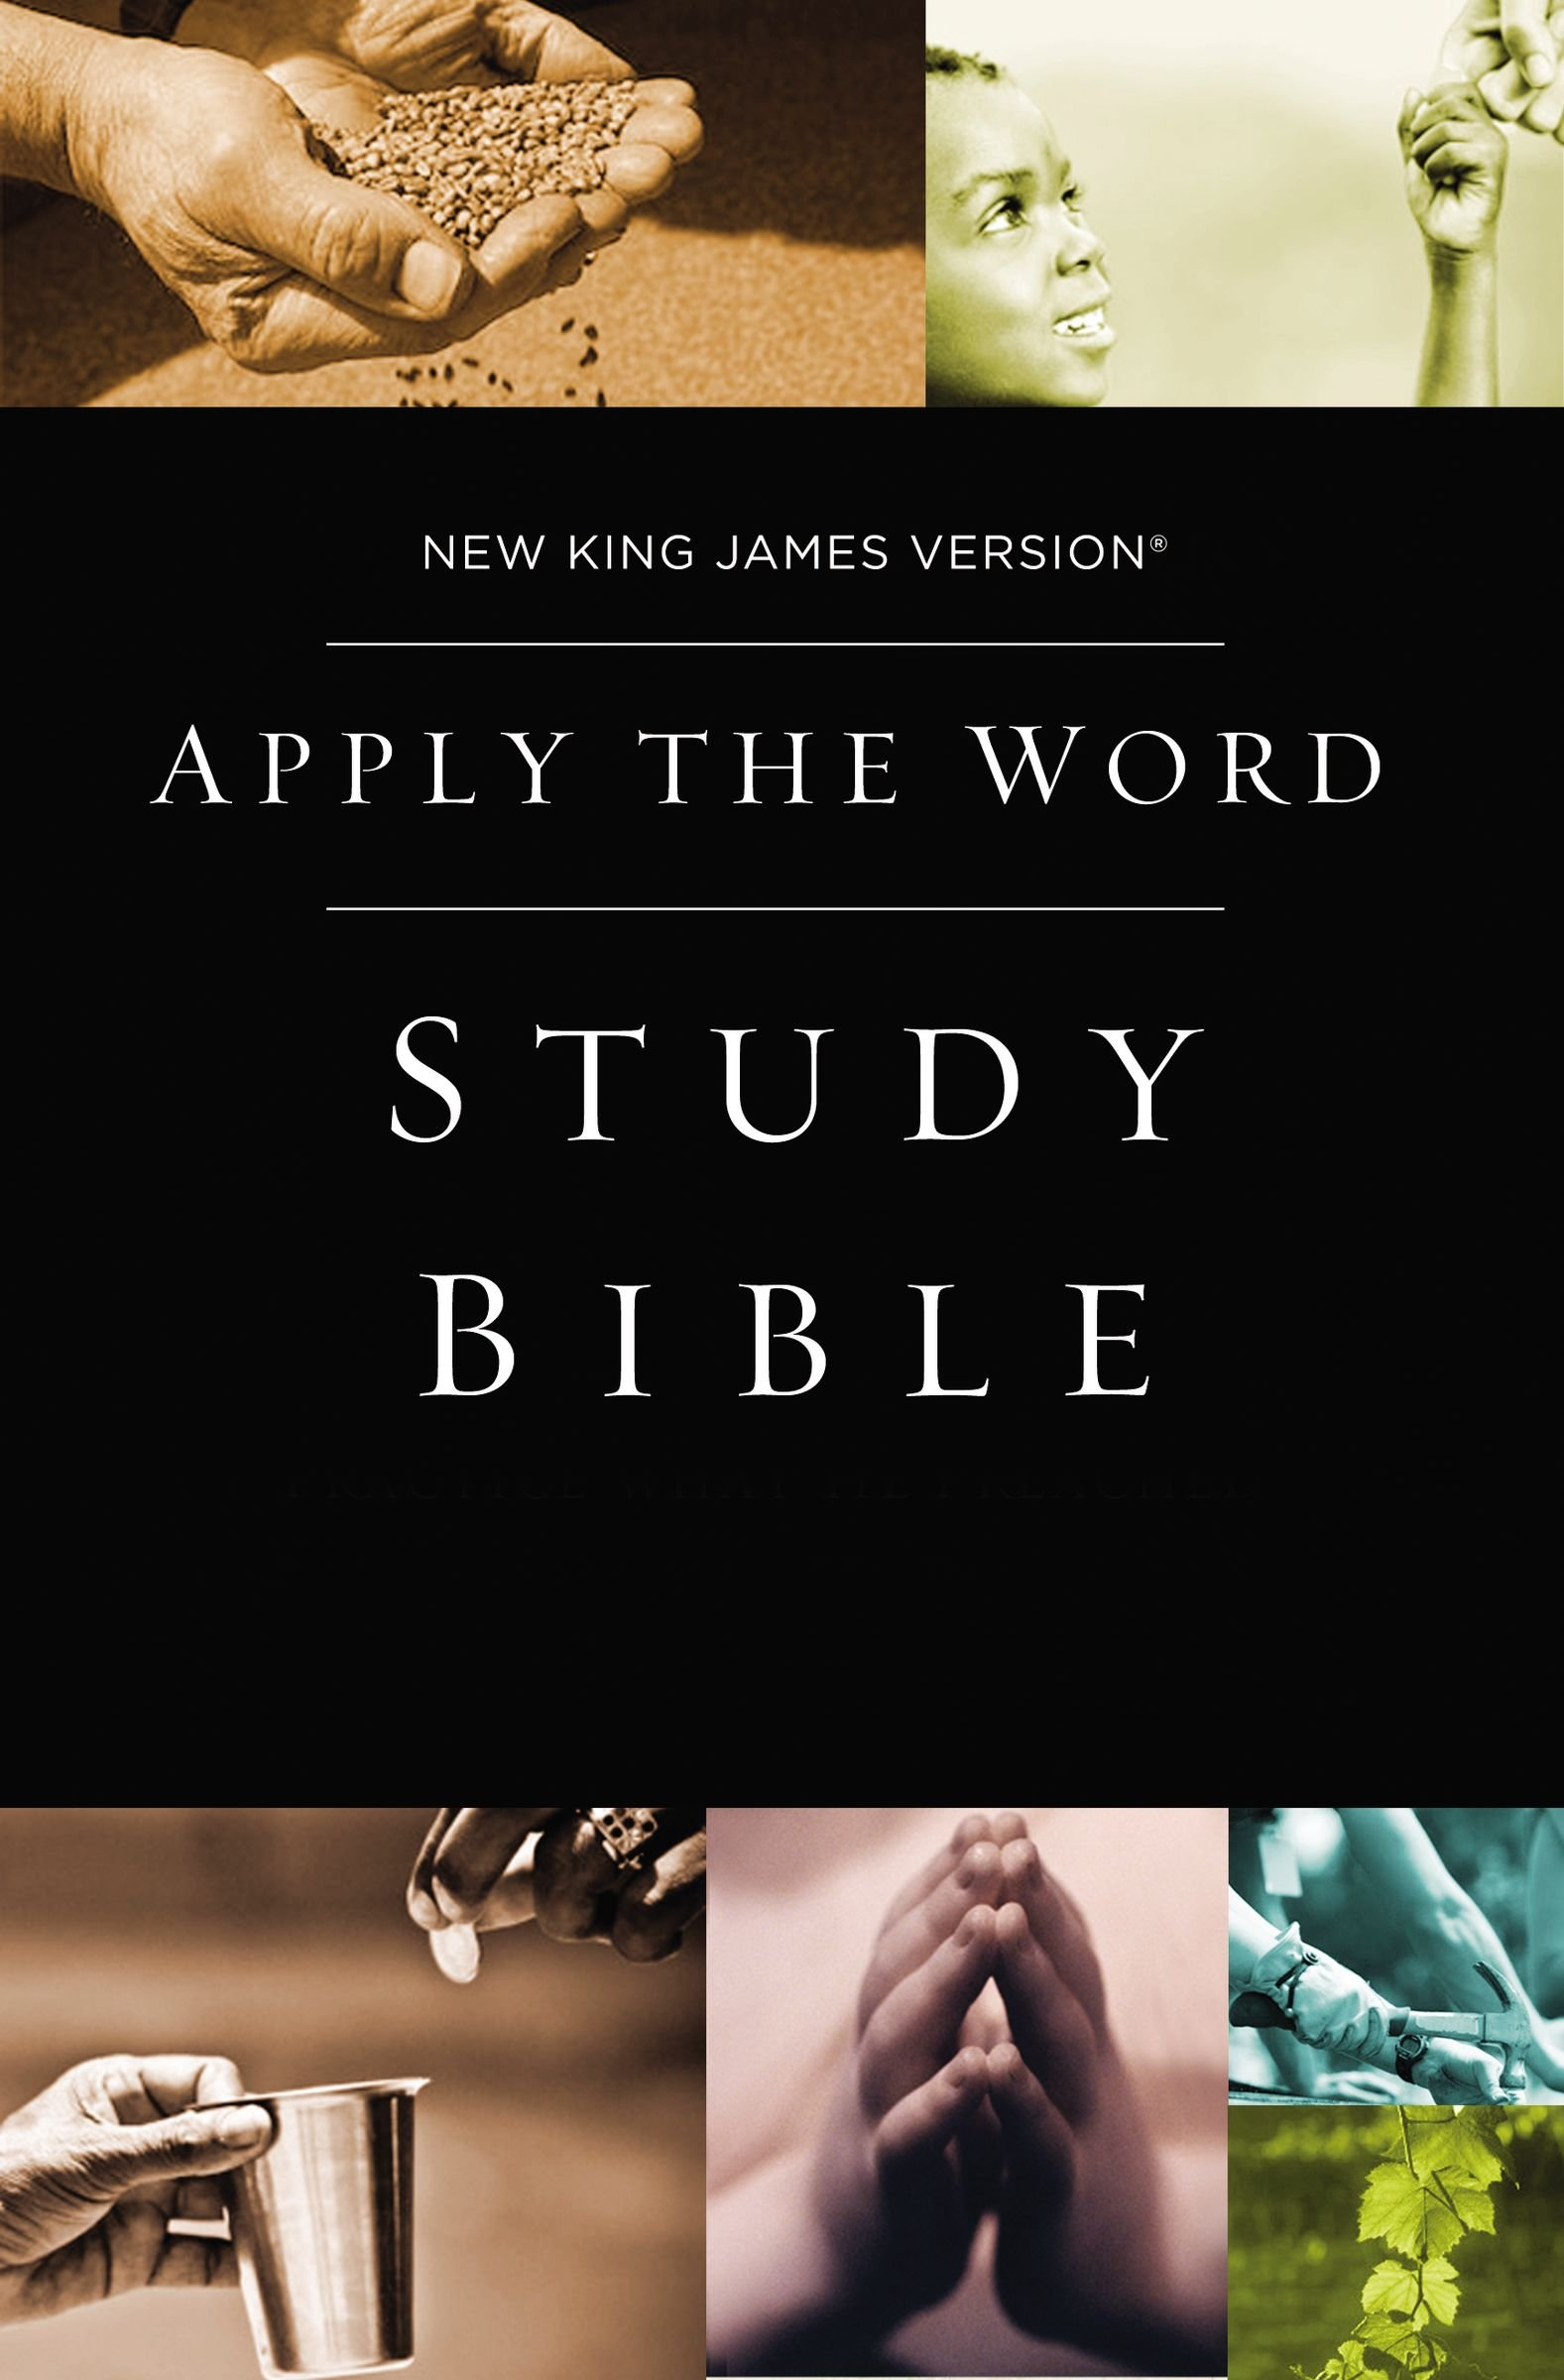 nkjv apply the word study bible hardcover red letter edition